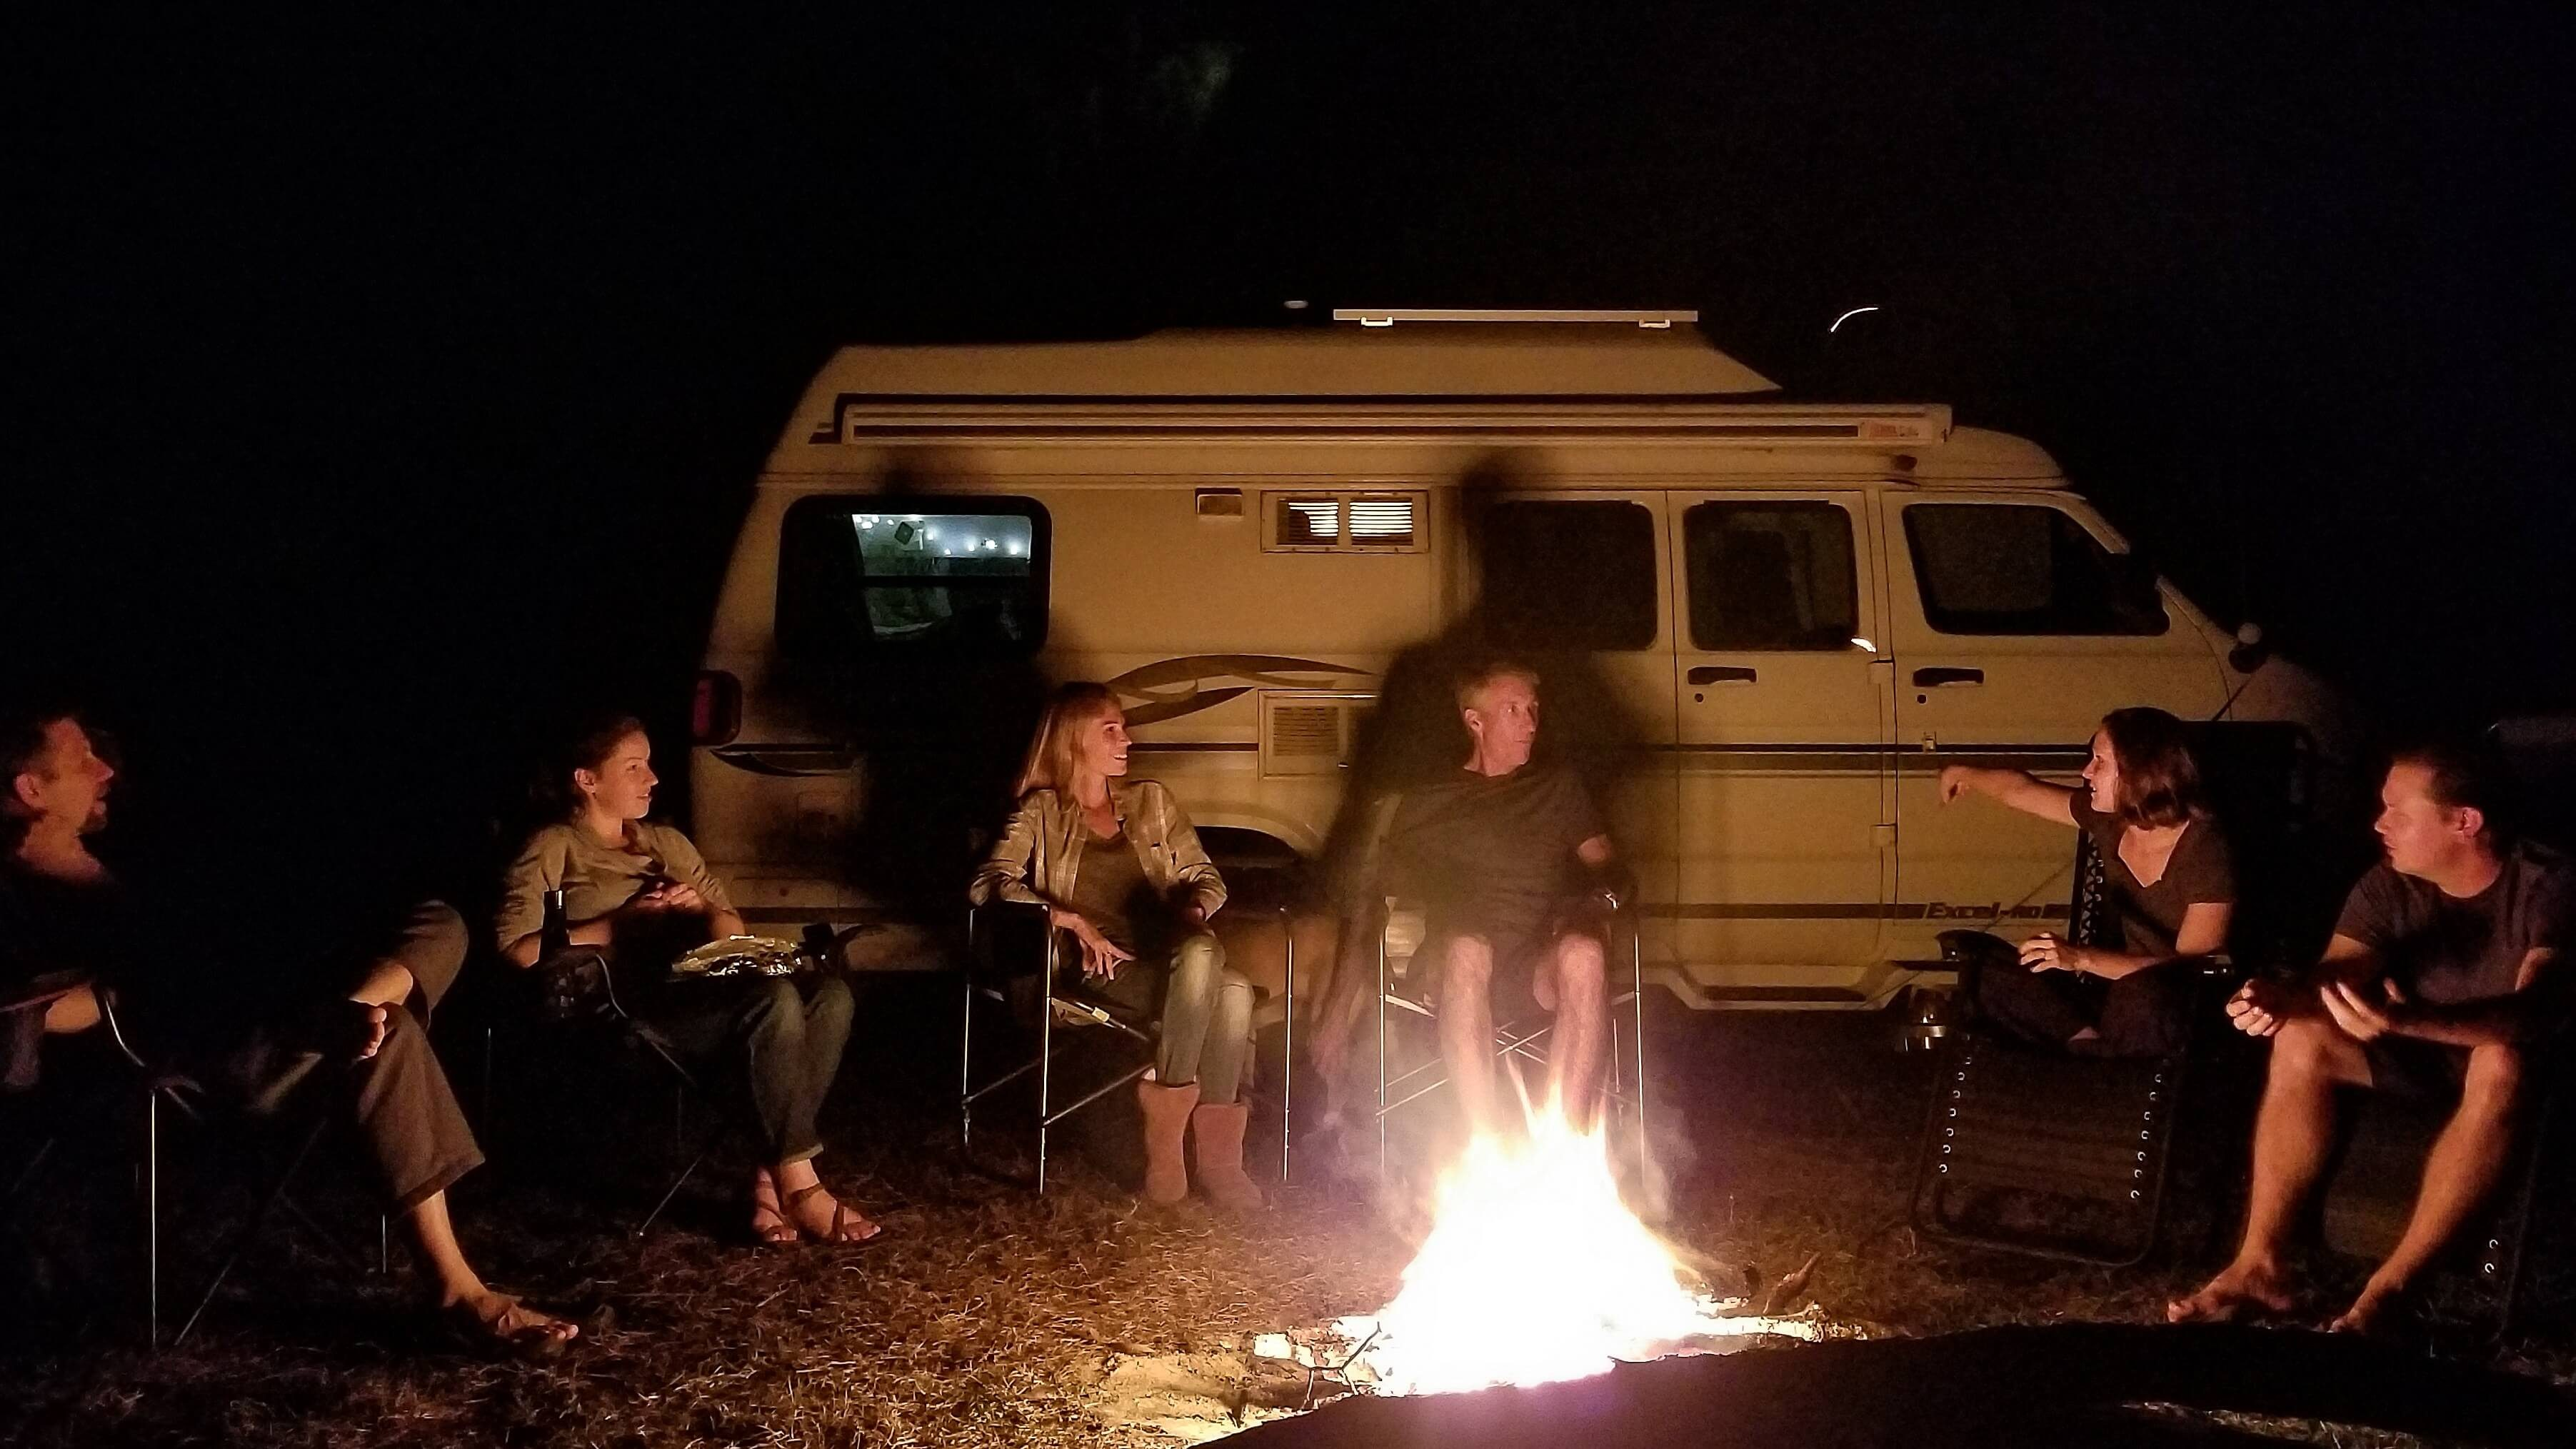 People sitting around campfire in front of camper van